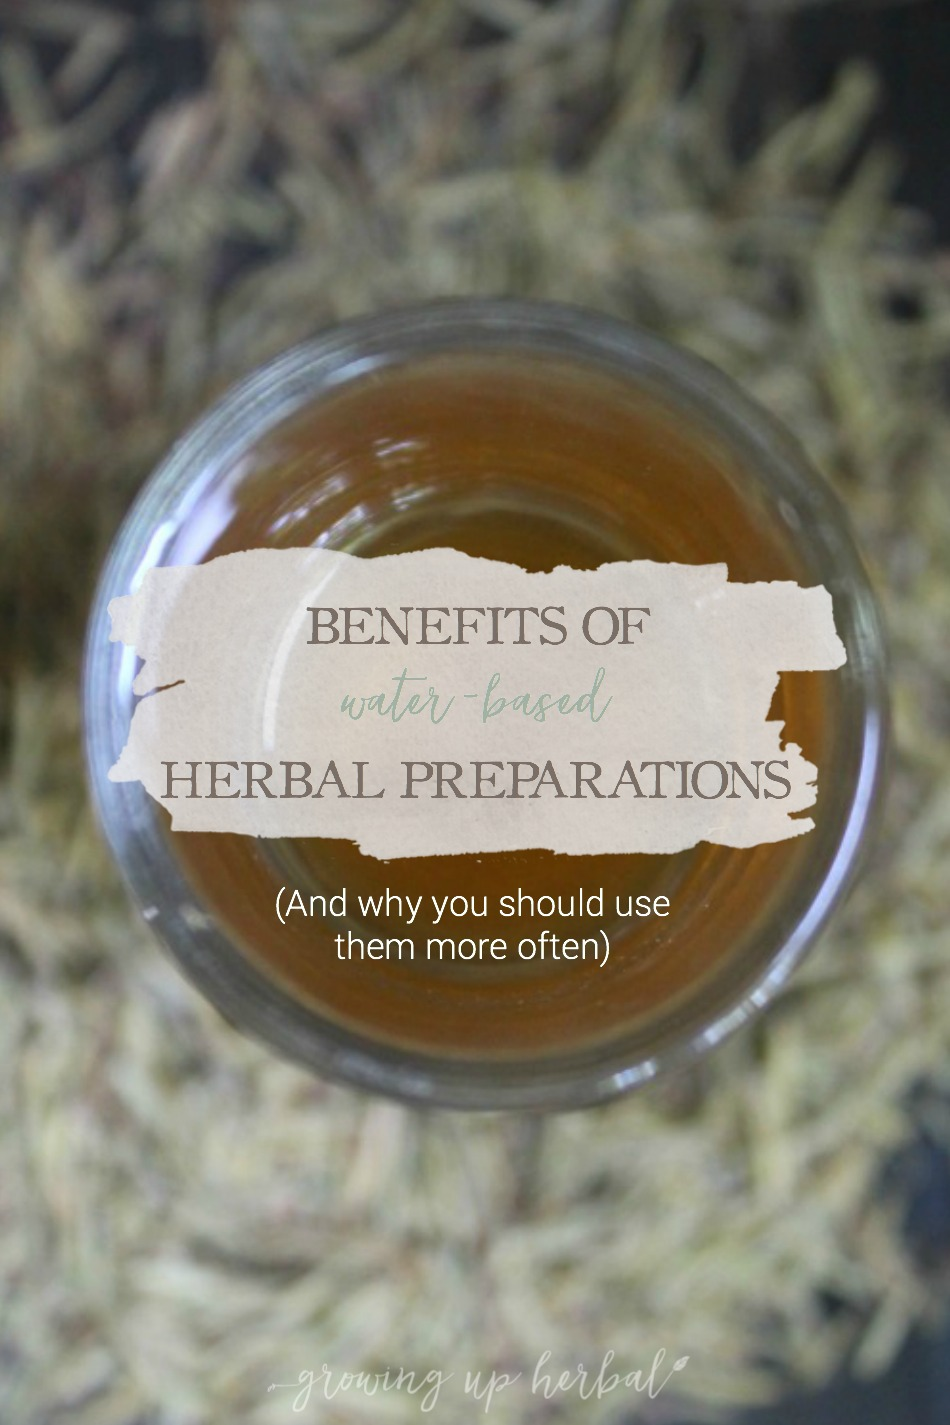 Benefits of Water-Based Herbal Preparations | Growing Up Herbal | Ever wondered what benefits you gain from teas, infusions, decoctions, and other water-based herbal preparations? This post explains it in simple terms!